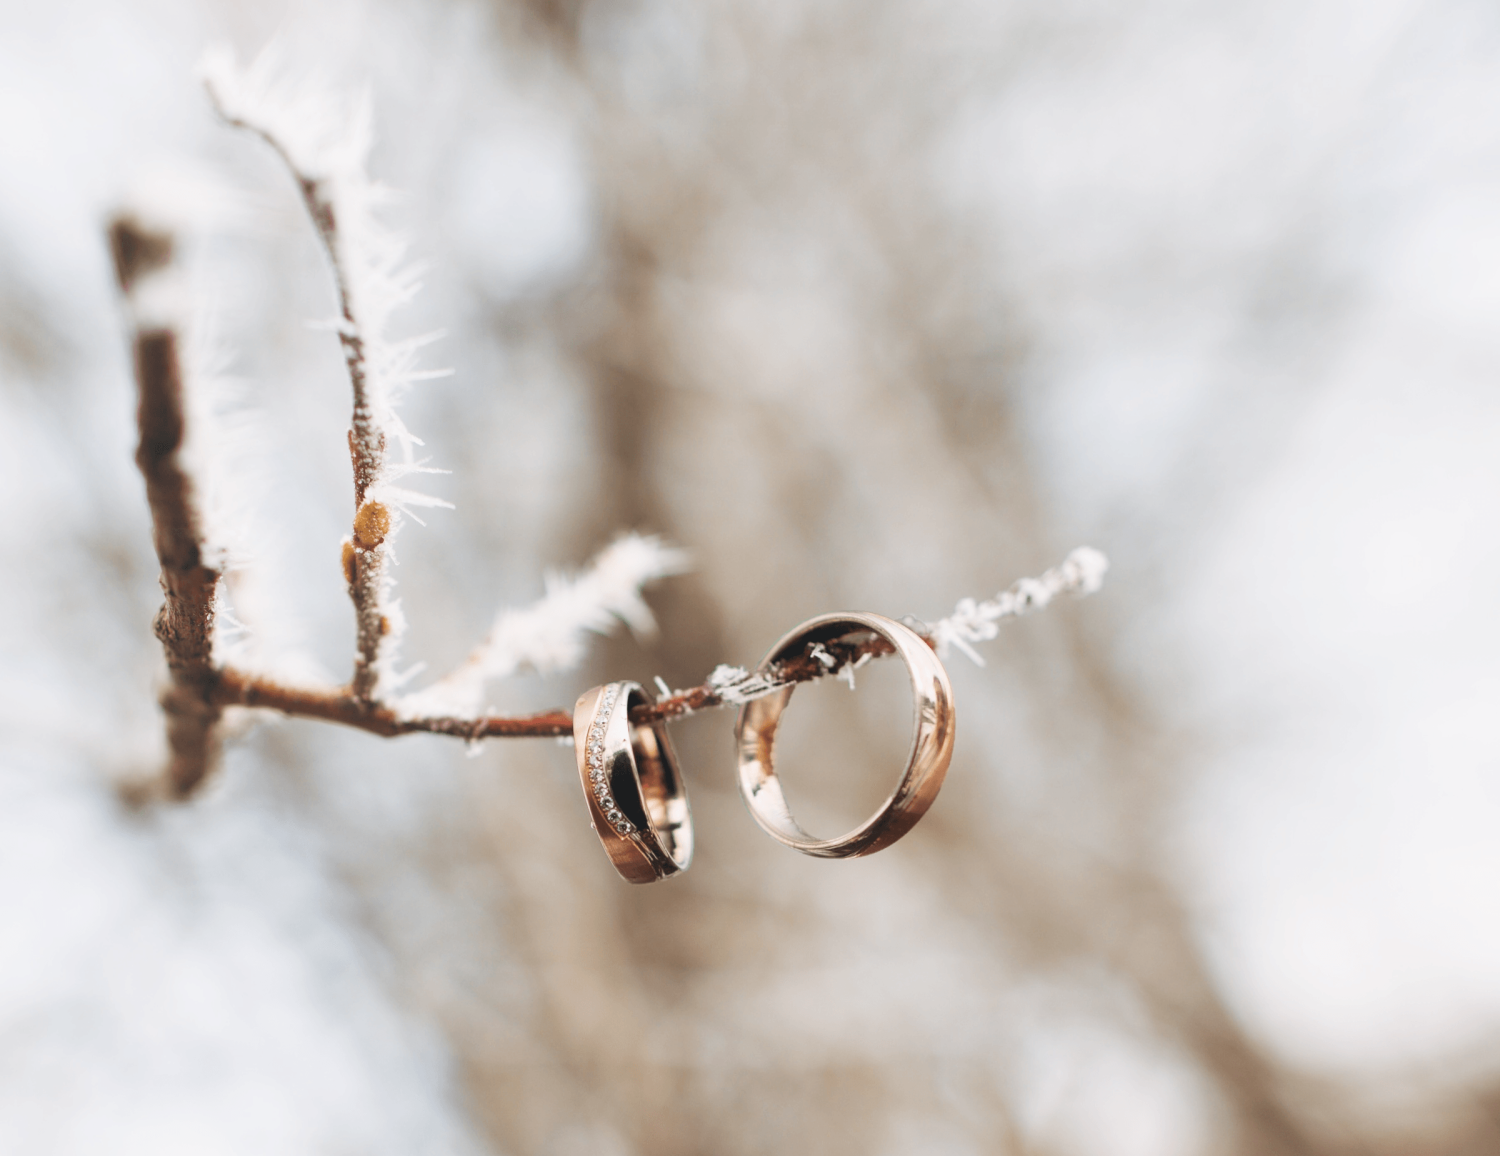 A couple's wedding rings on a branch with frost.